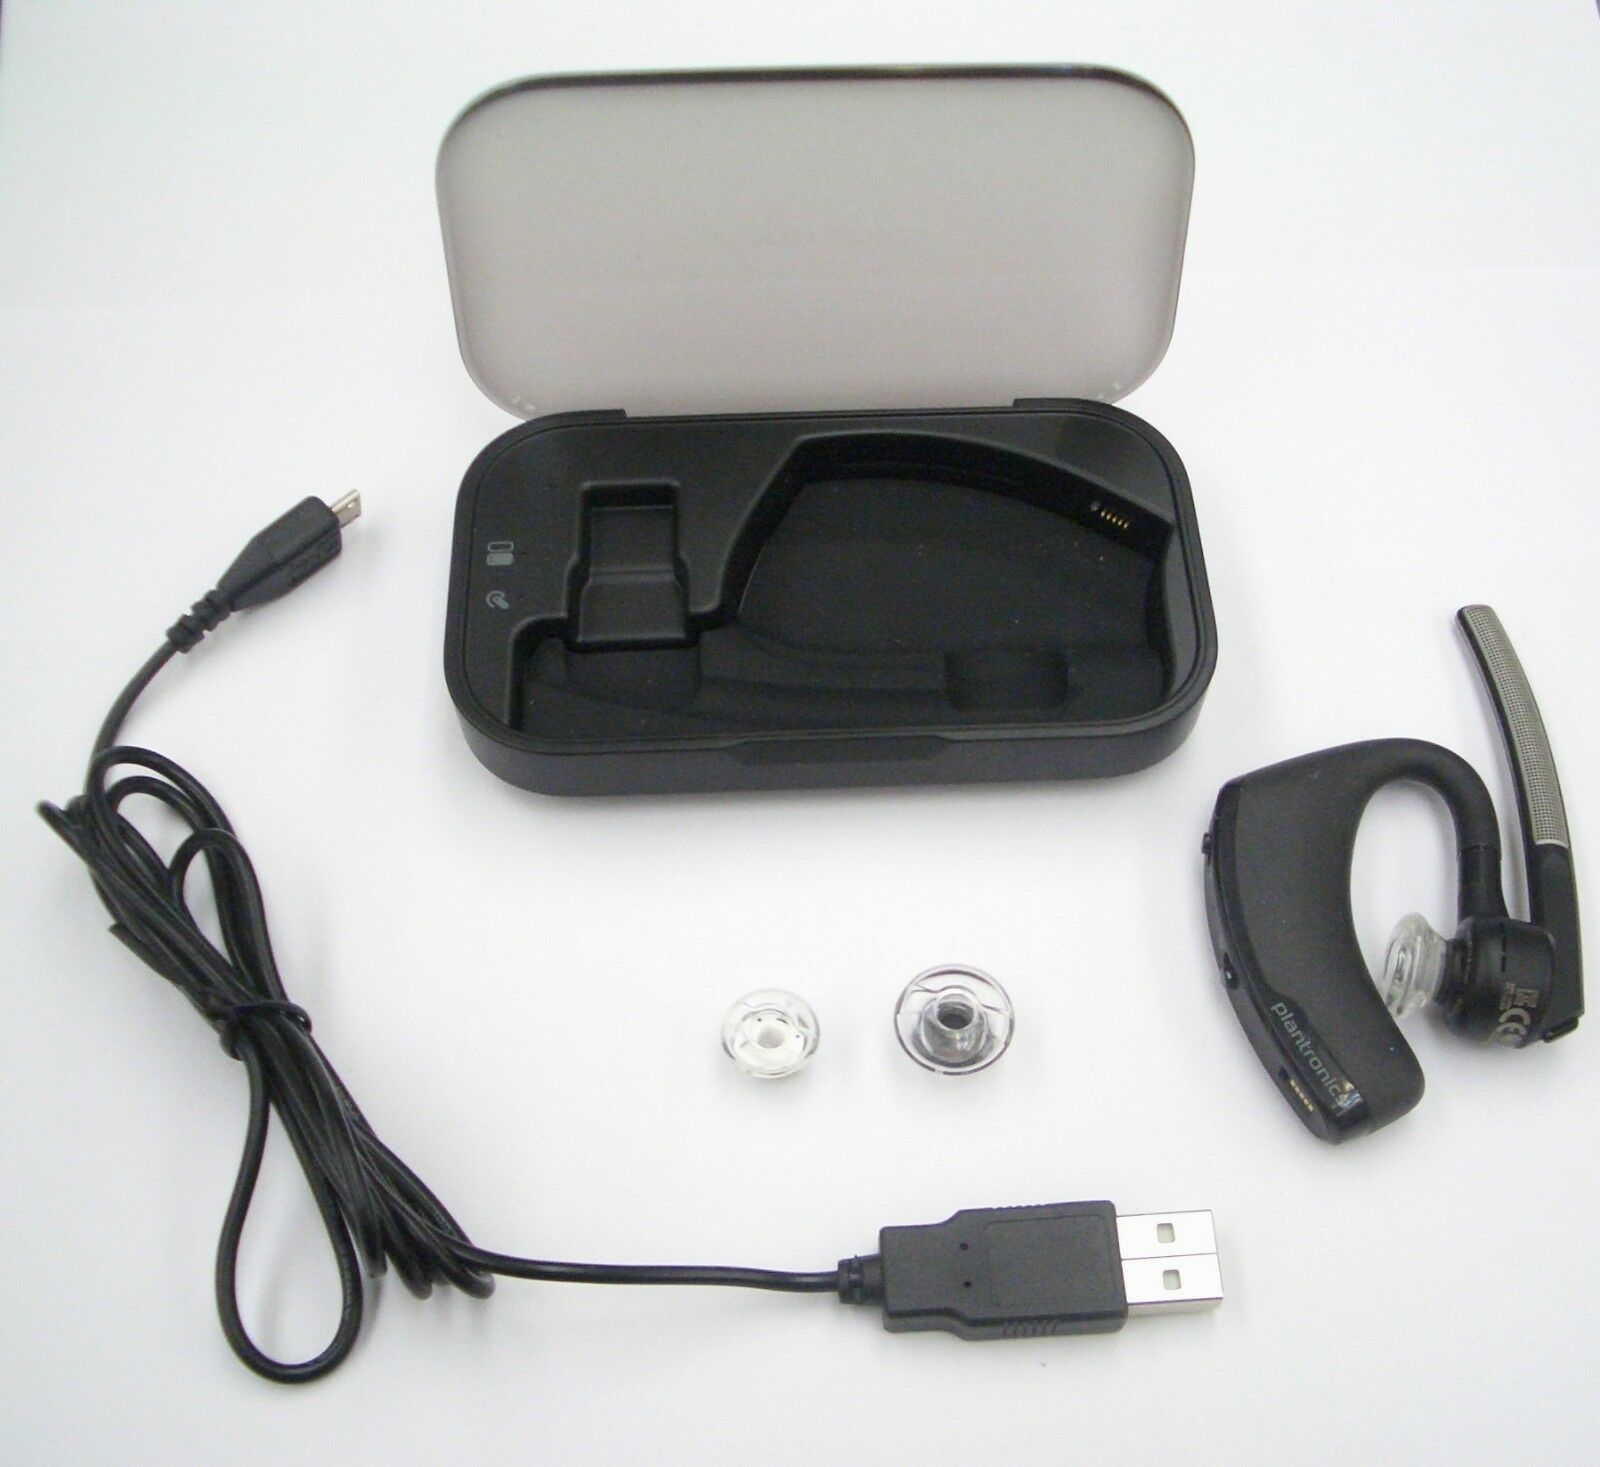 Plantronics 89880 01 Voyager Legend Mobile Bluetooth Headset With Charging Case 17229141094 Ebay